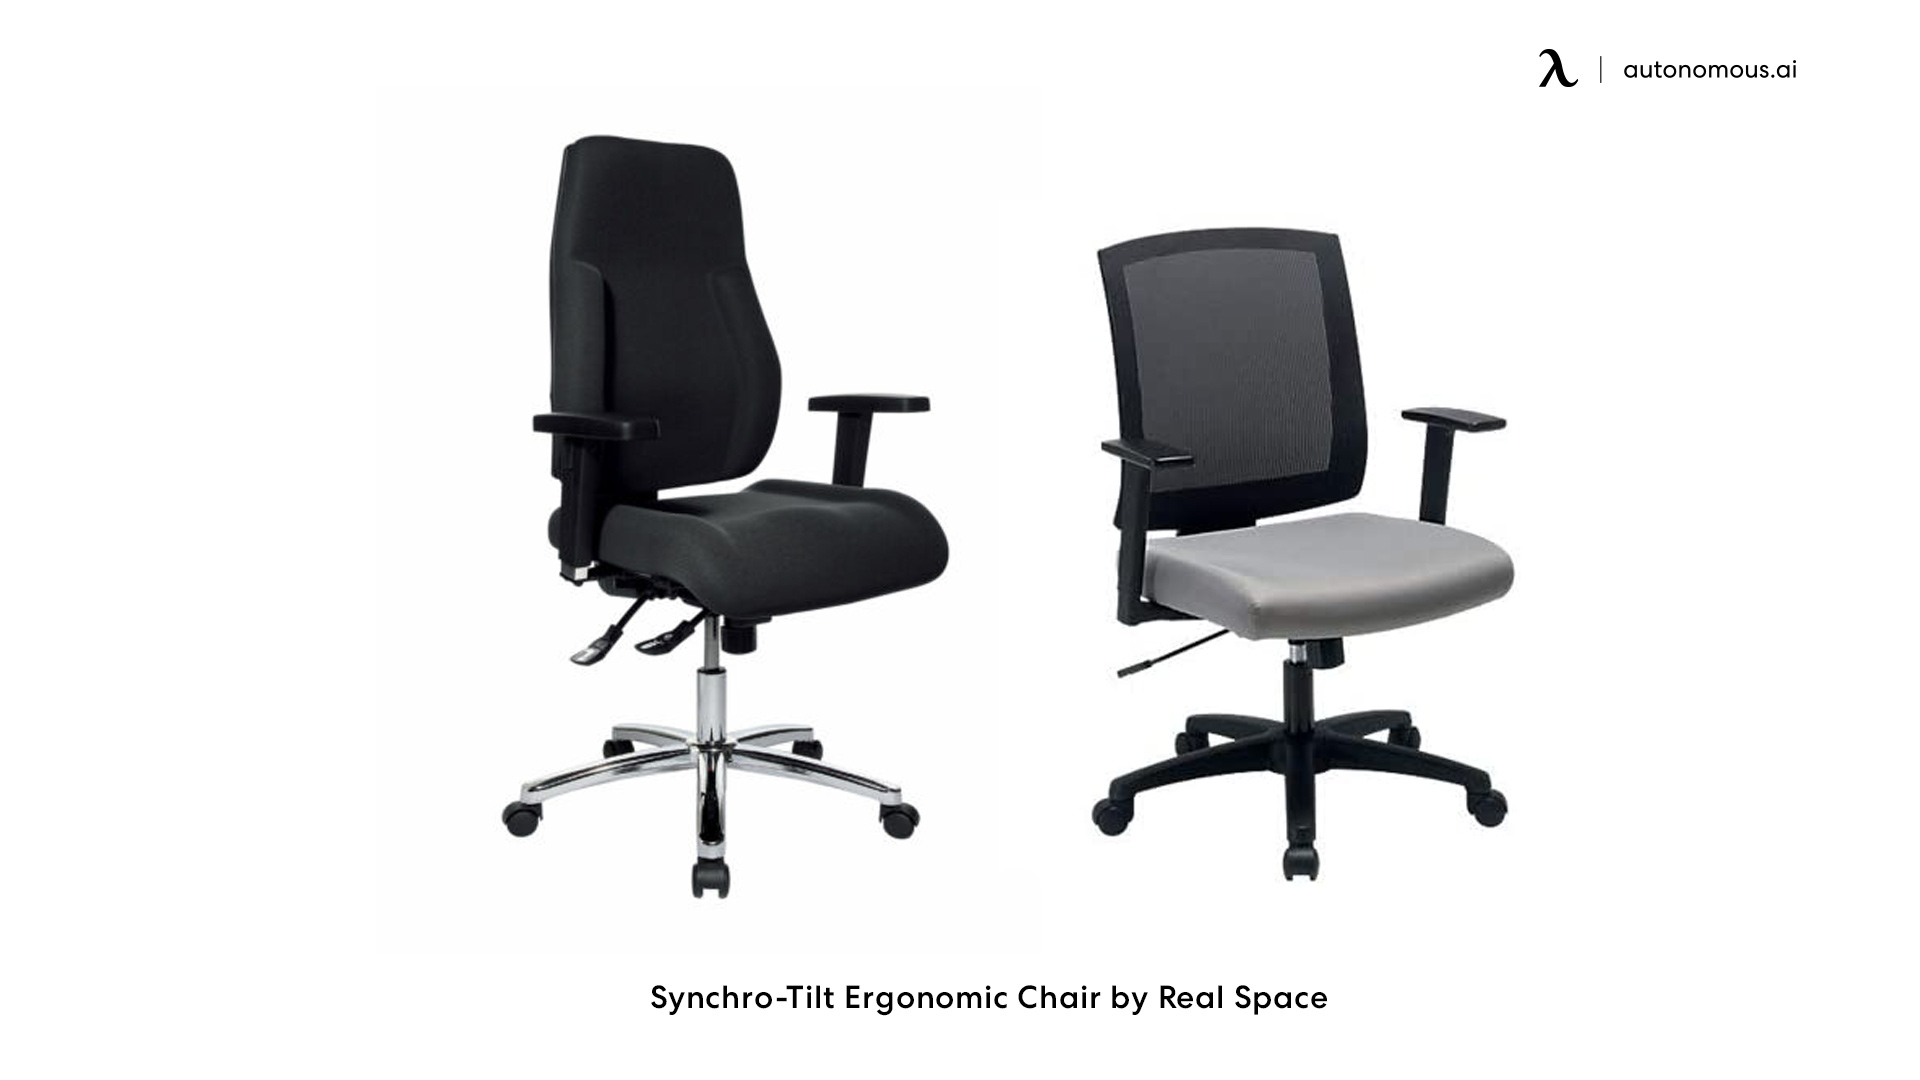 Synchro-Tilt Ergonomic Chair by Real Space